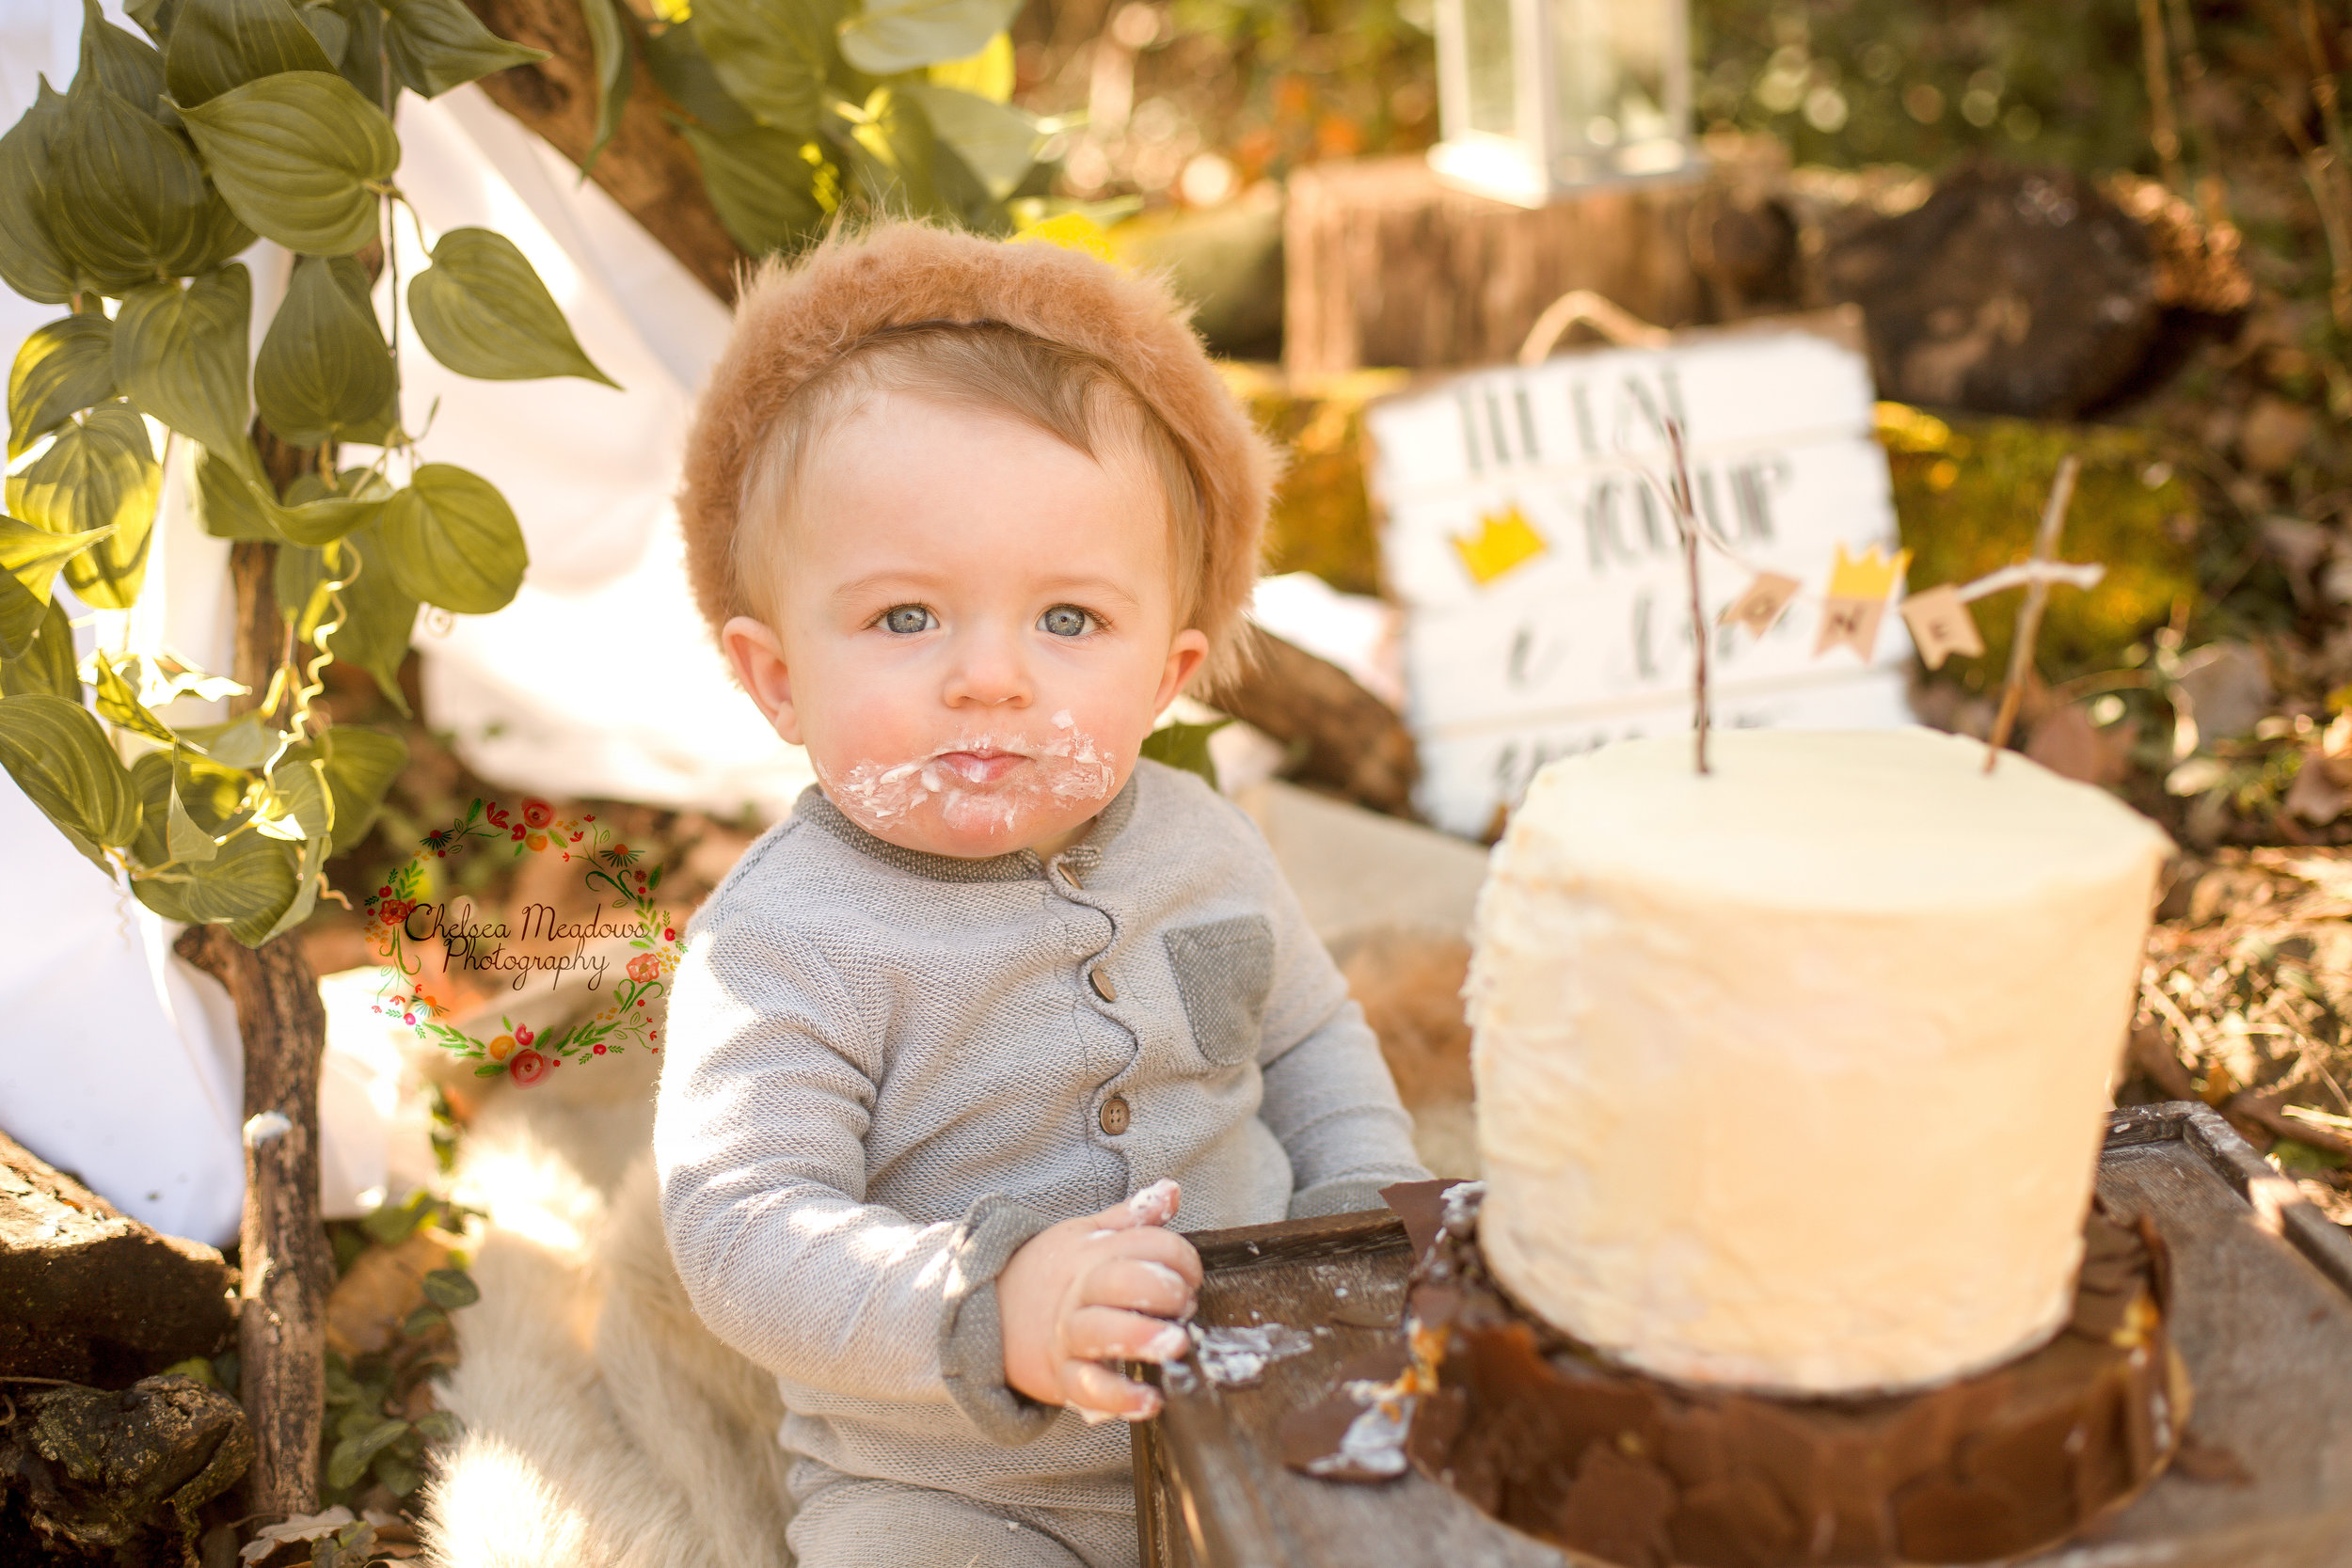 Matteo First Birthday Cake Smash - Nashville Family Photographer - Chelsea Meadows Photography (57).jpg